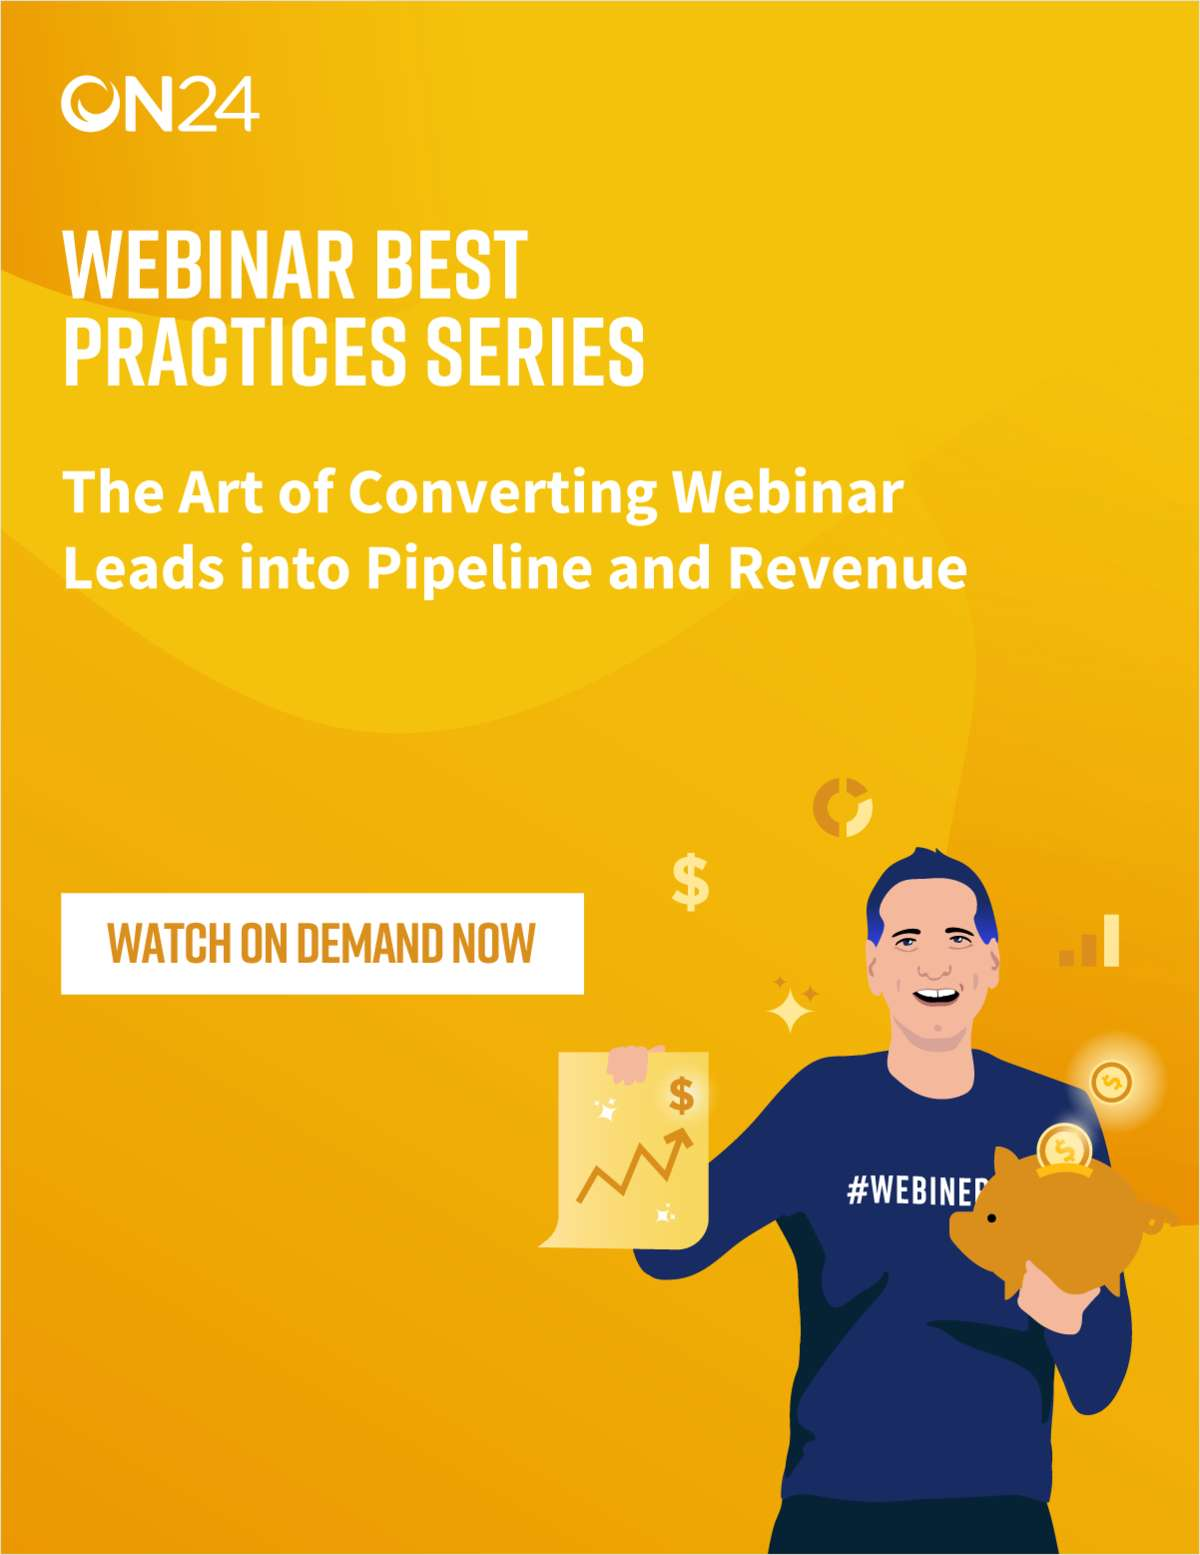 Webinar Best Practices Series: The Art of Converting Webinar Leads into Pipeline and Revenue